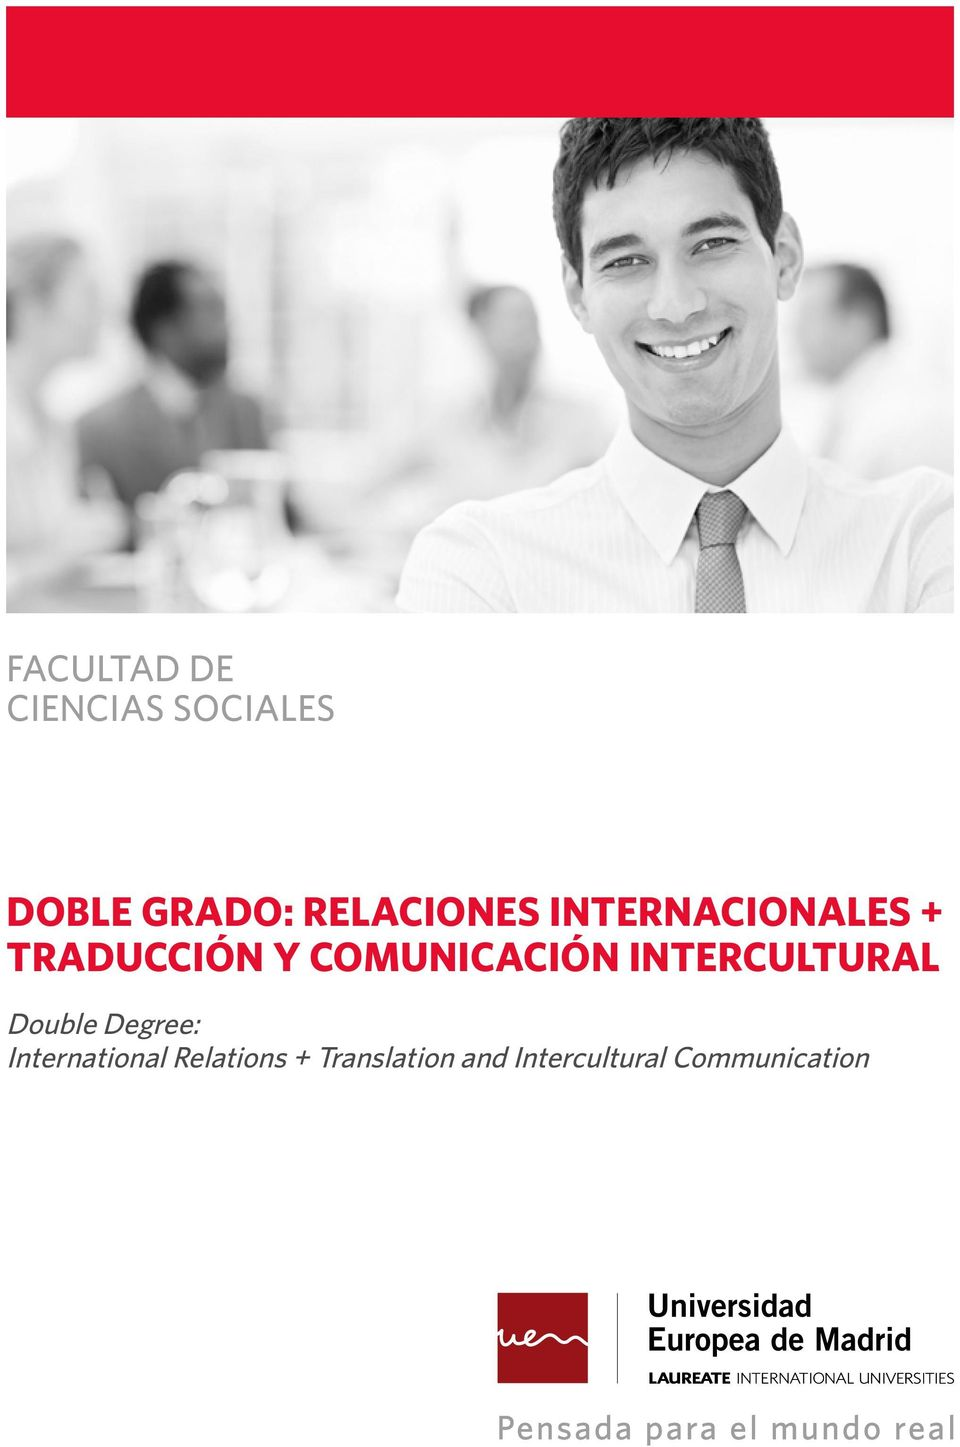 Double Degree: International Relations